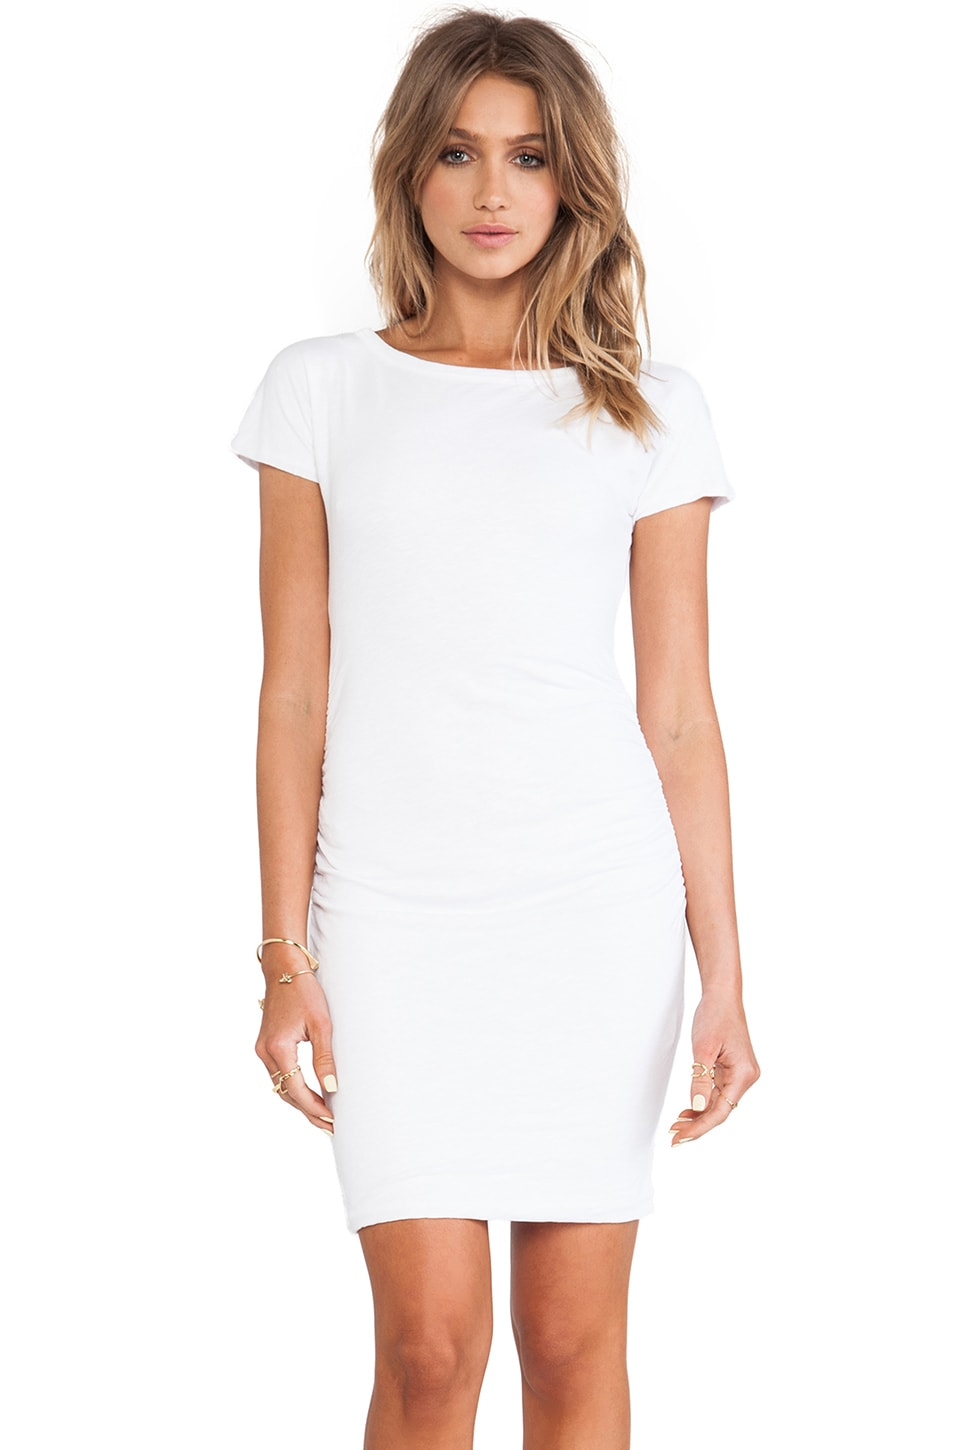 SUNDRY Boat Neck Ruched Dress in White